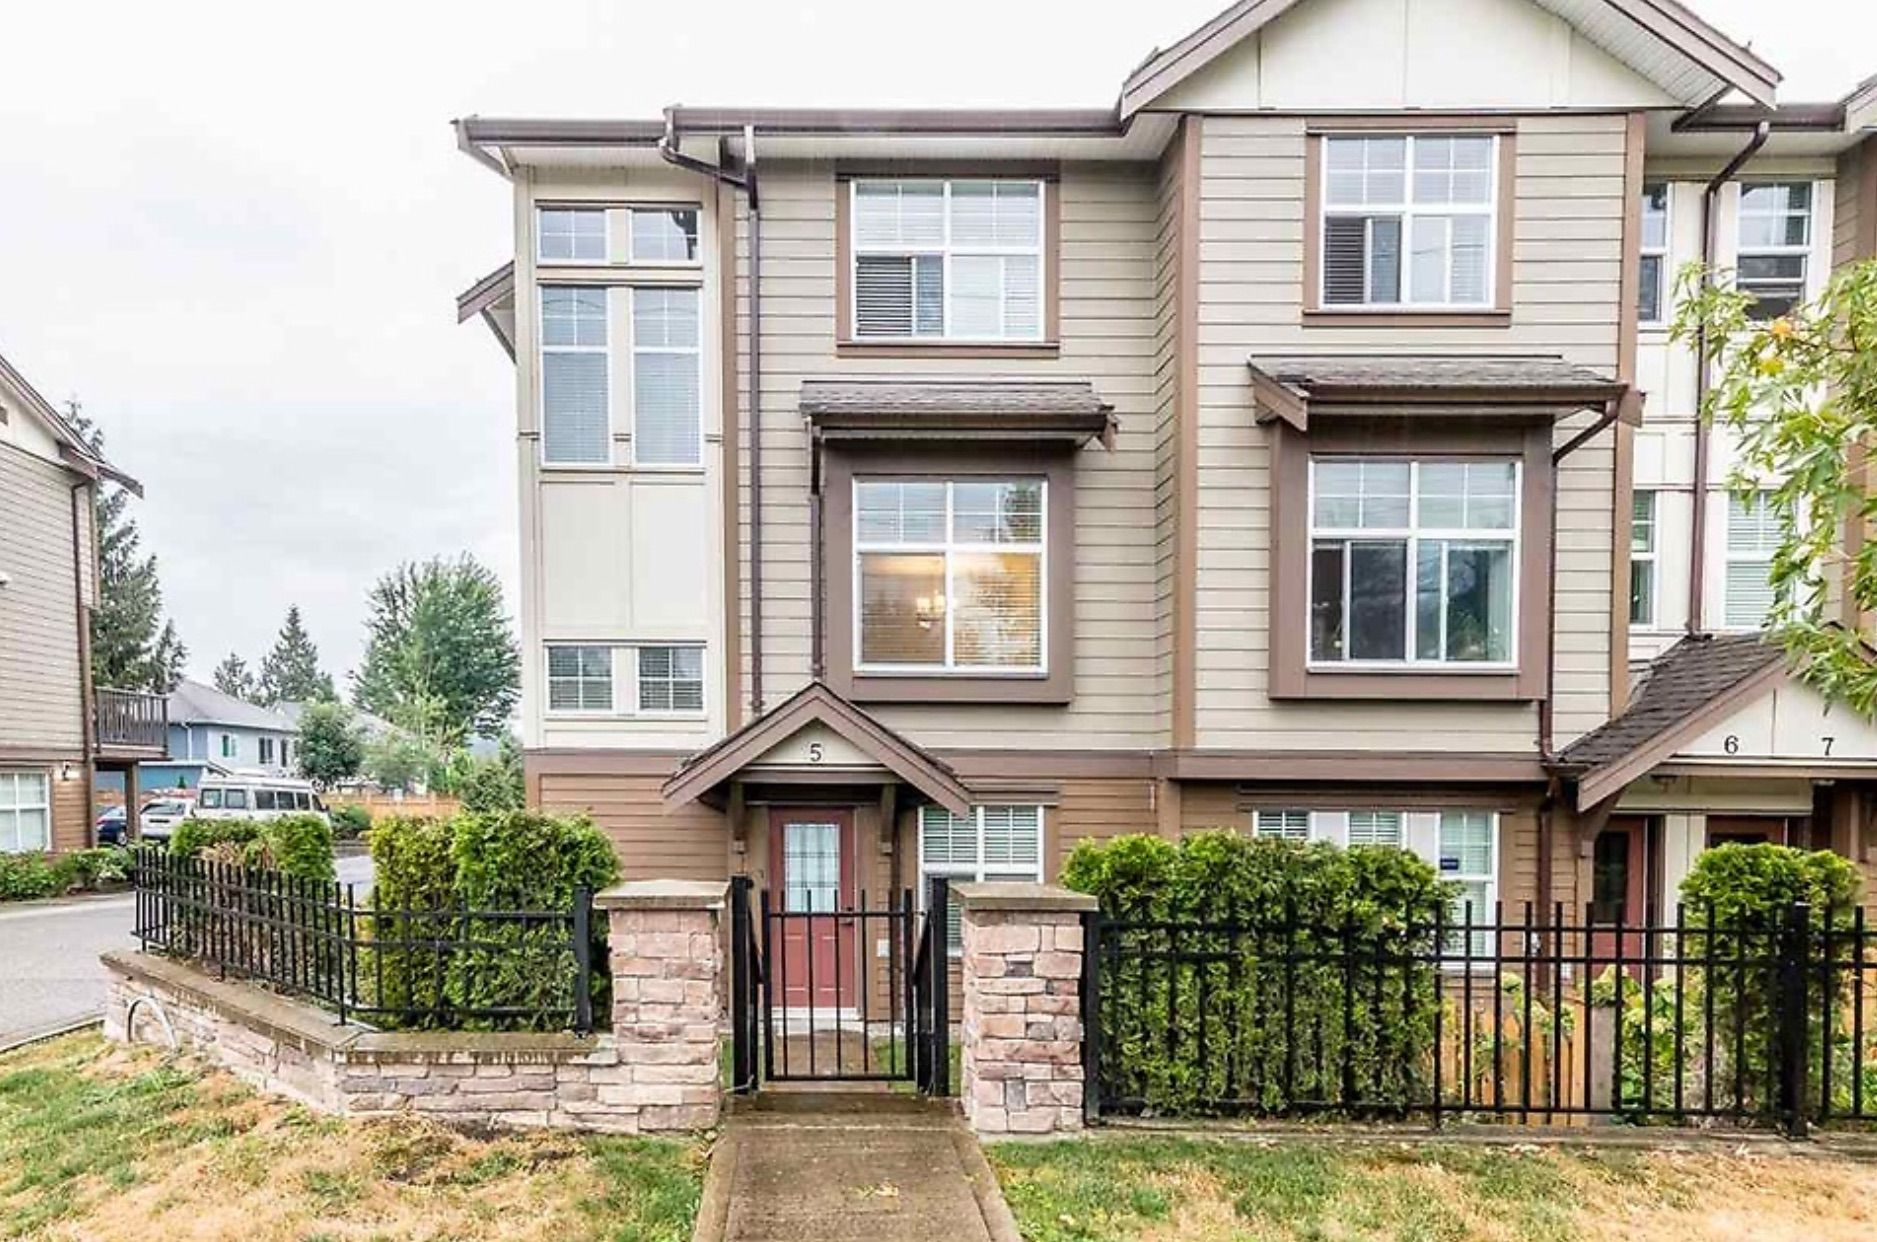 Main Photo: 5 33860 Marshall Road in Abbotsford: Townhouse for sale